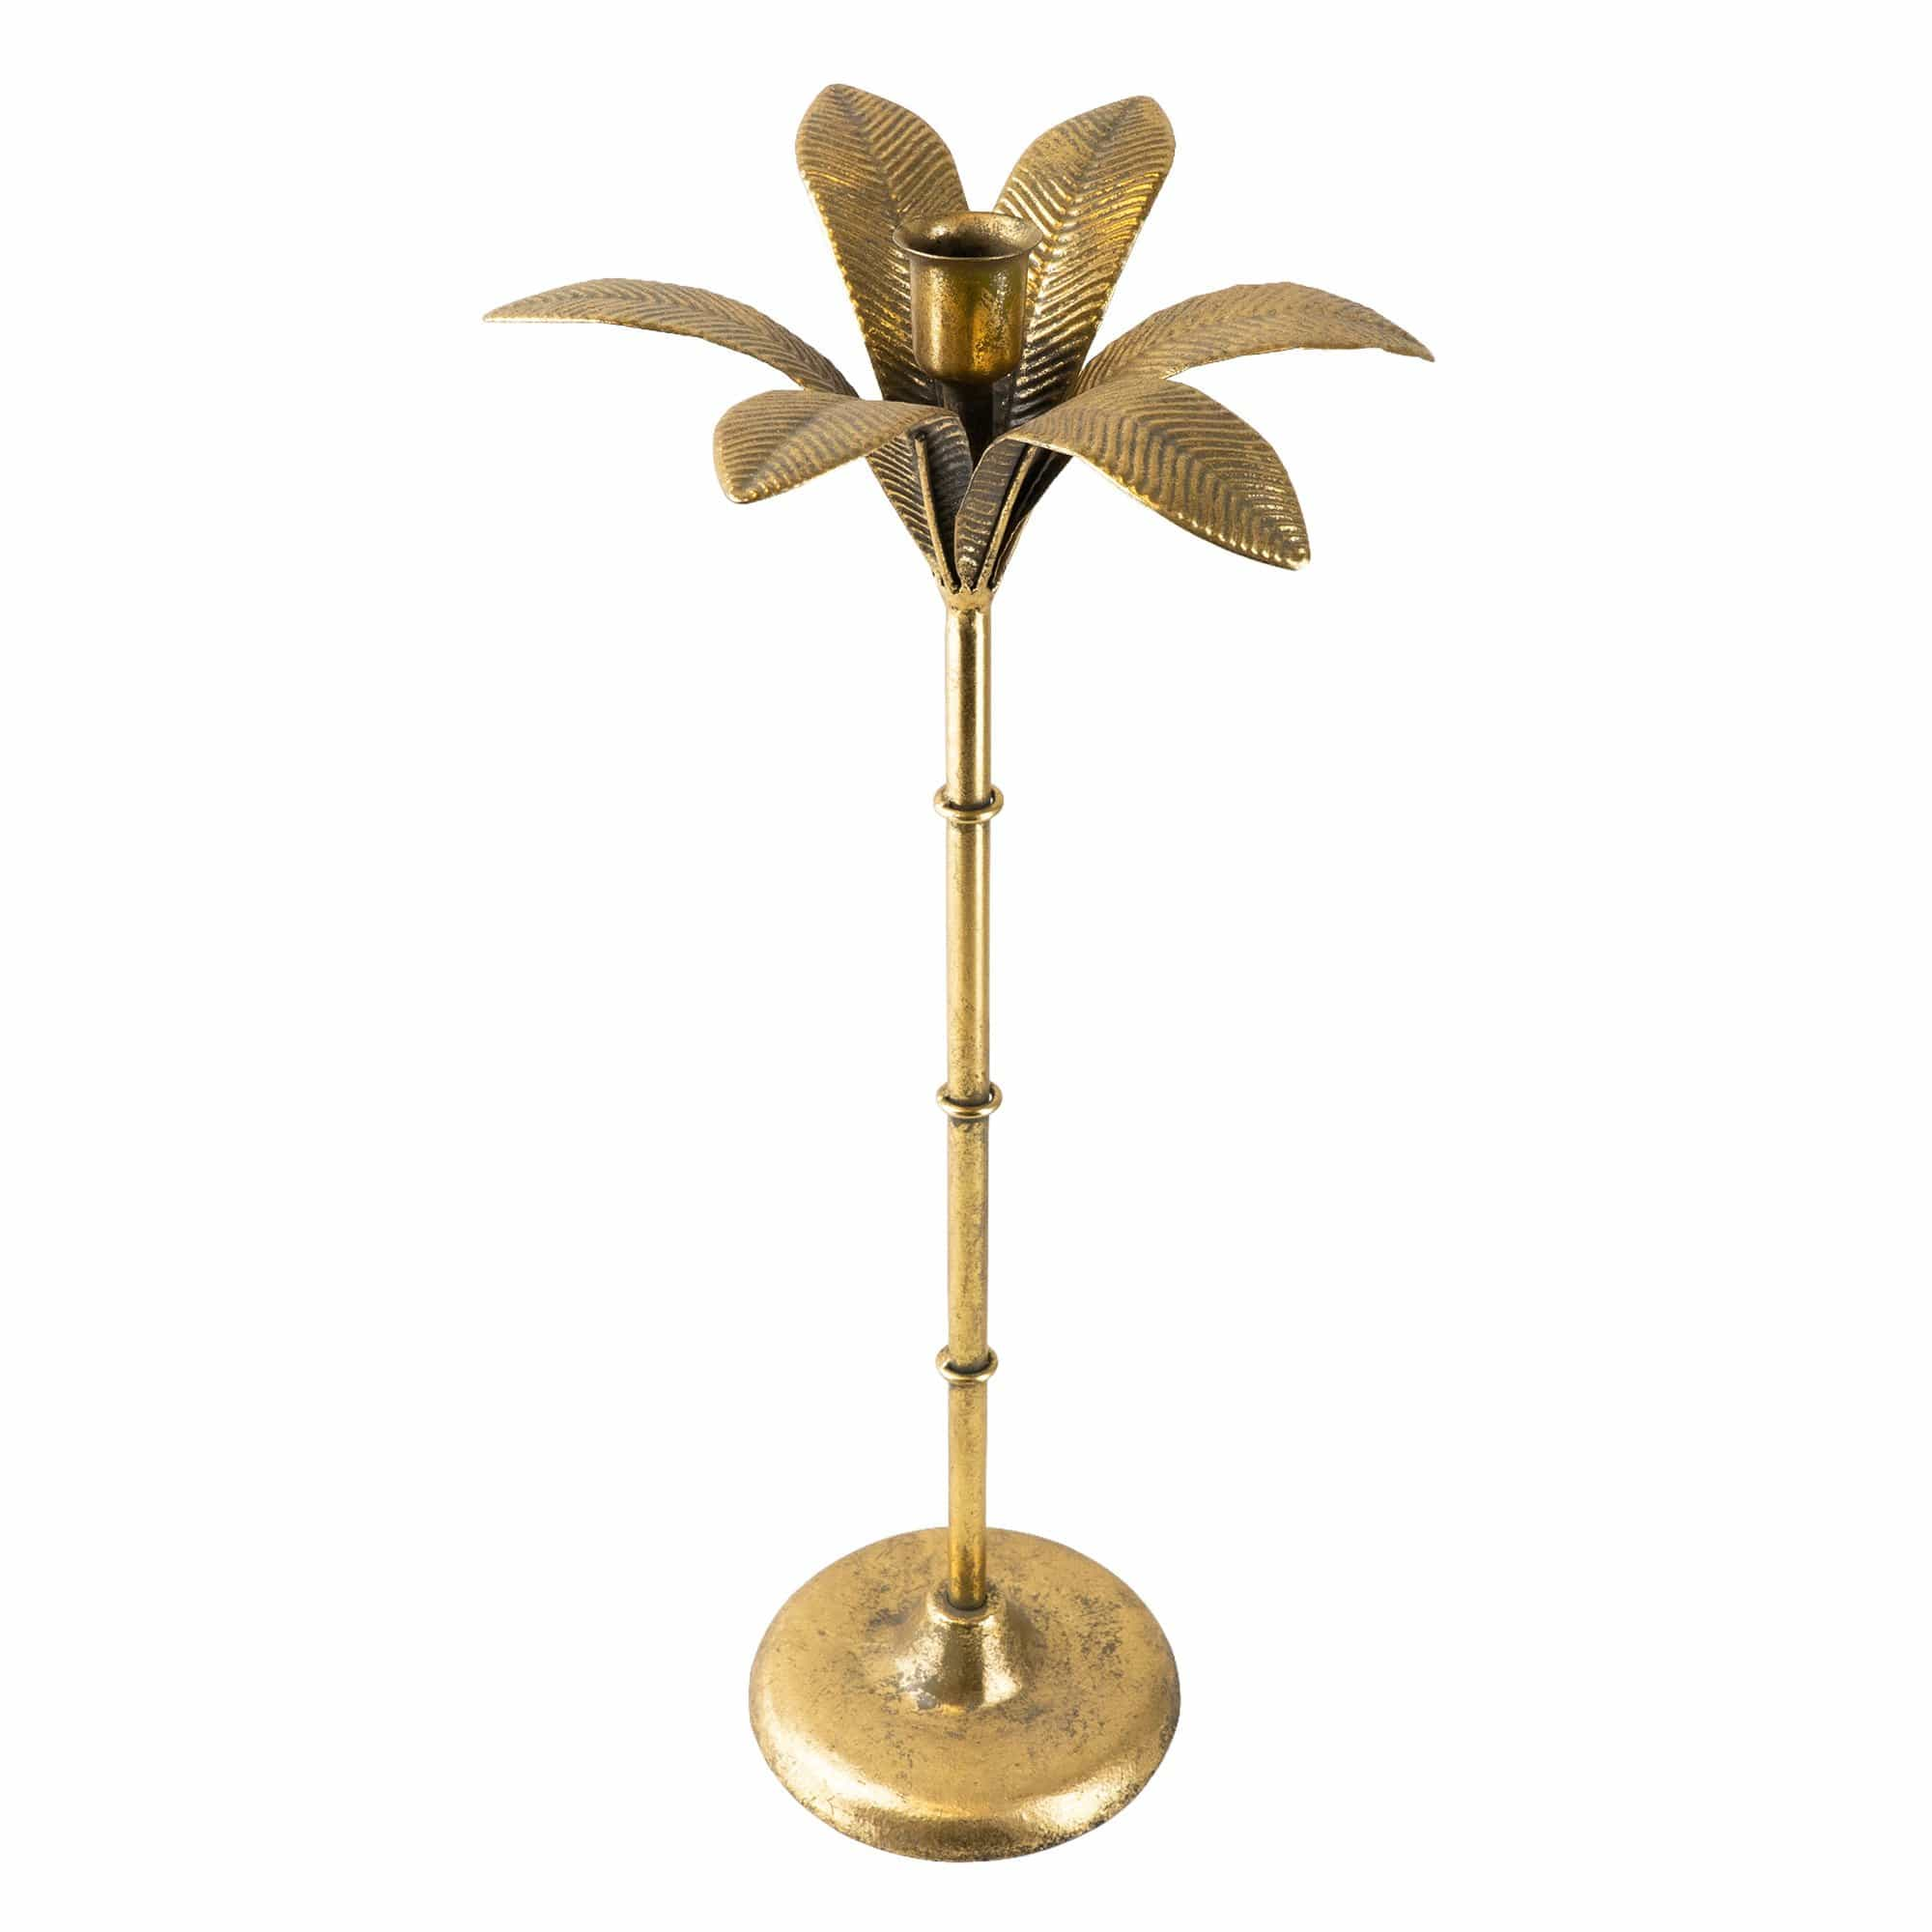 Candlelight Home Candle Holders Gold Palm Tree shaped Candle Holder 41 cm Tall 2PK